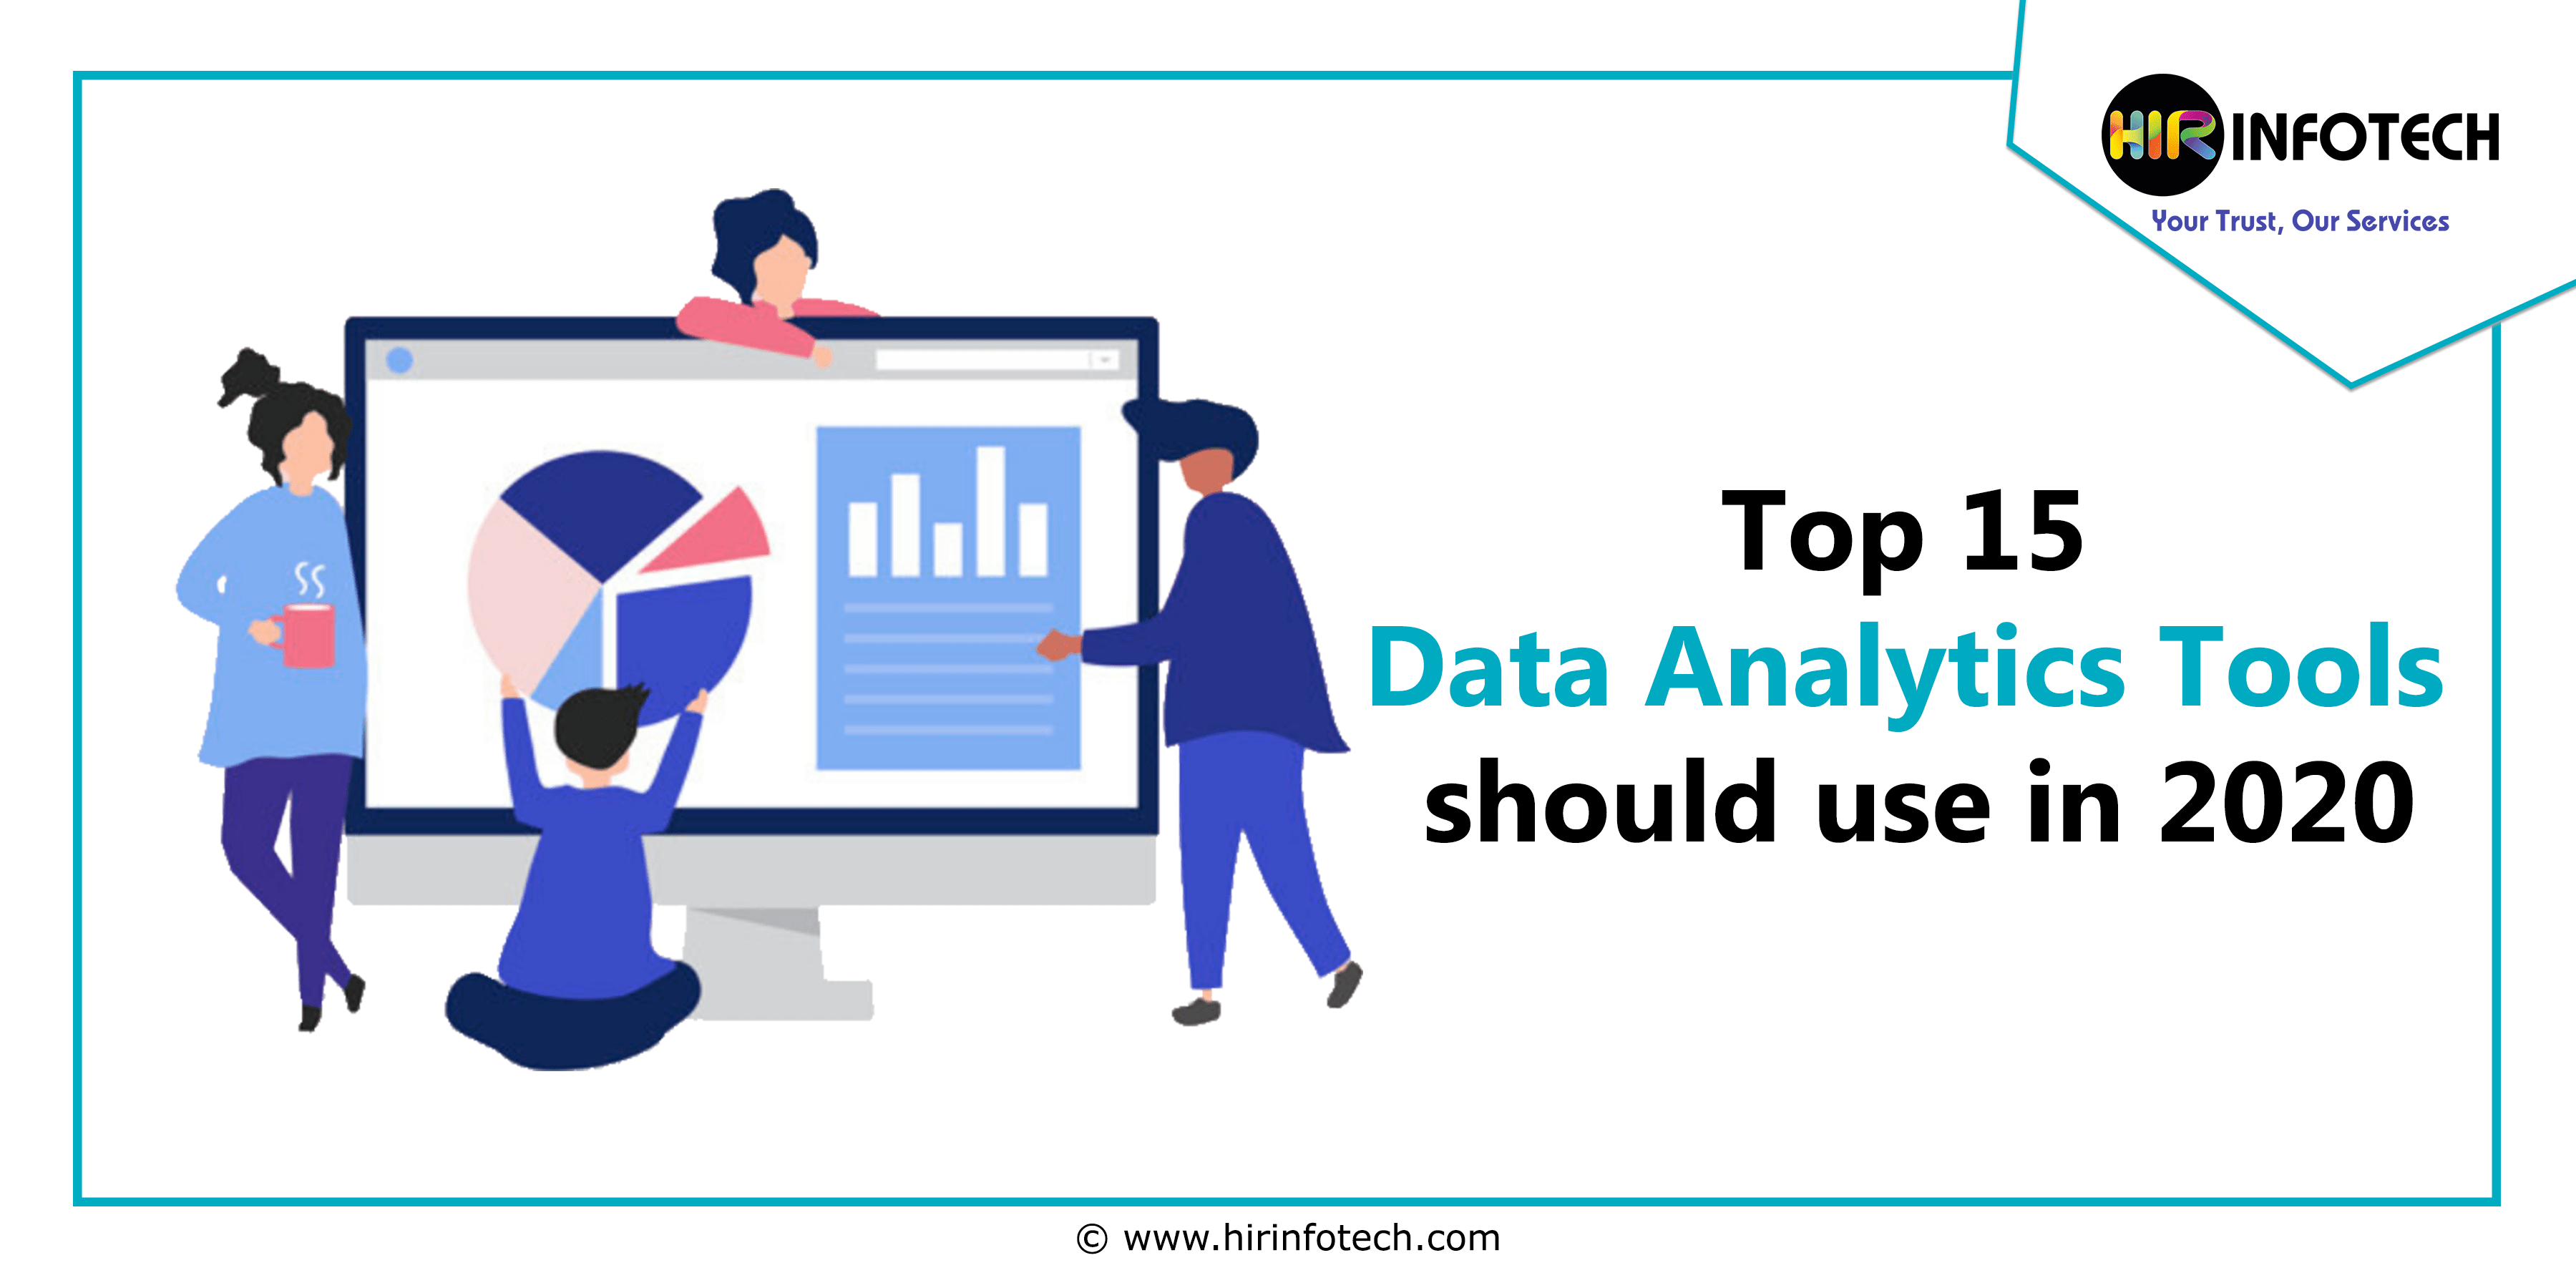 Top 15 Data Analytics Tools